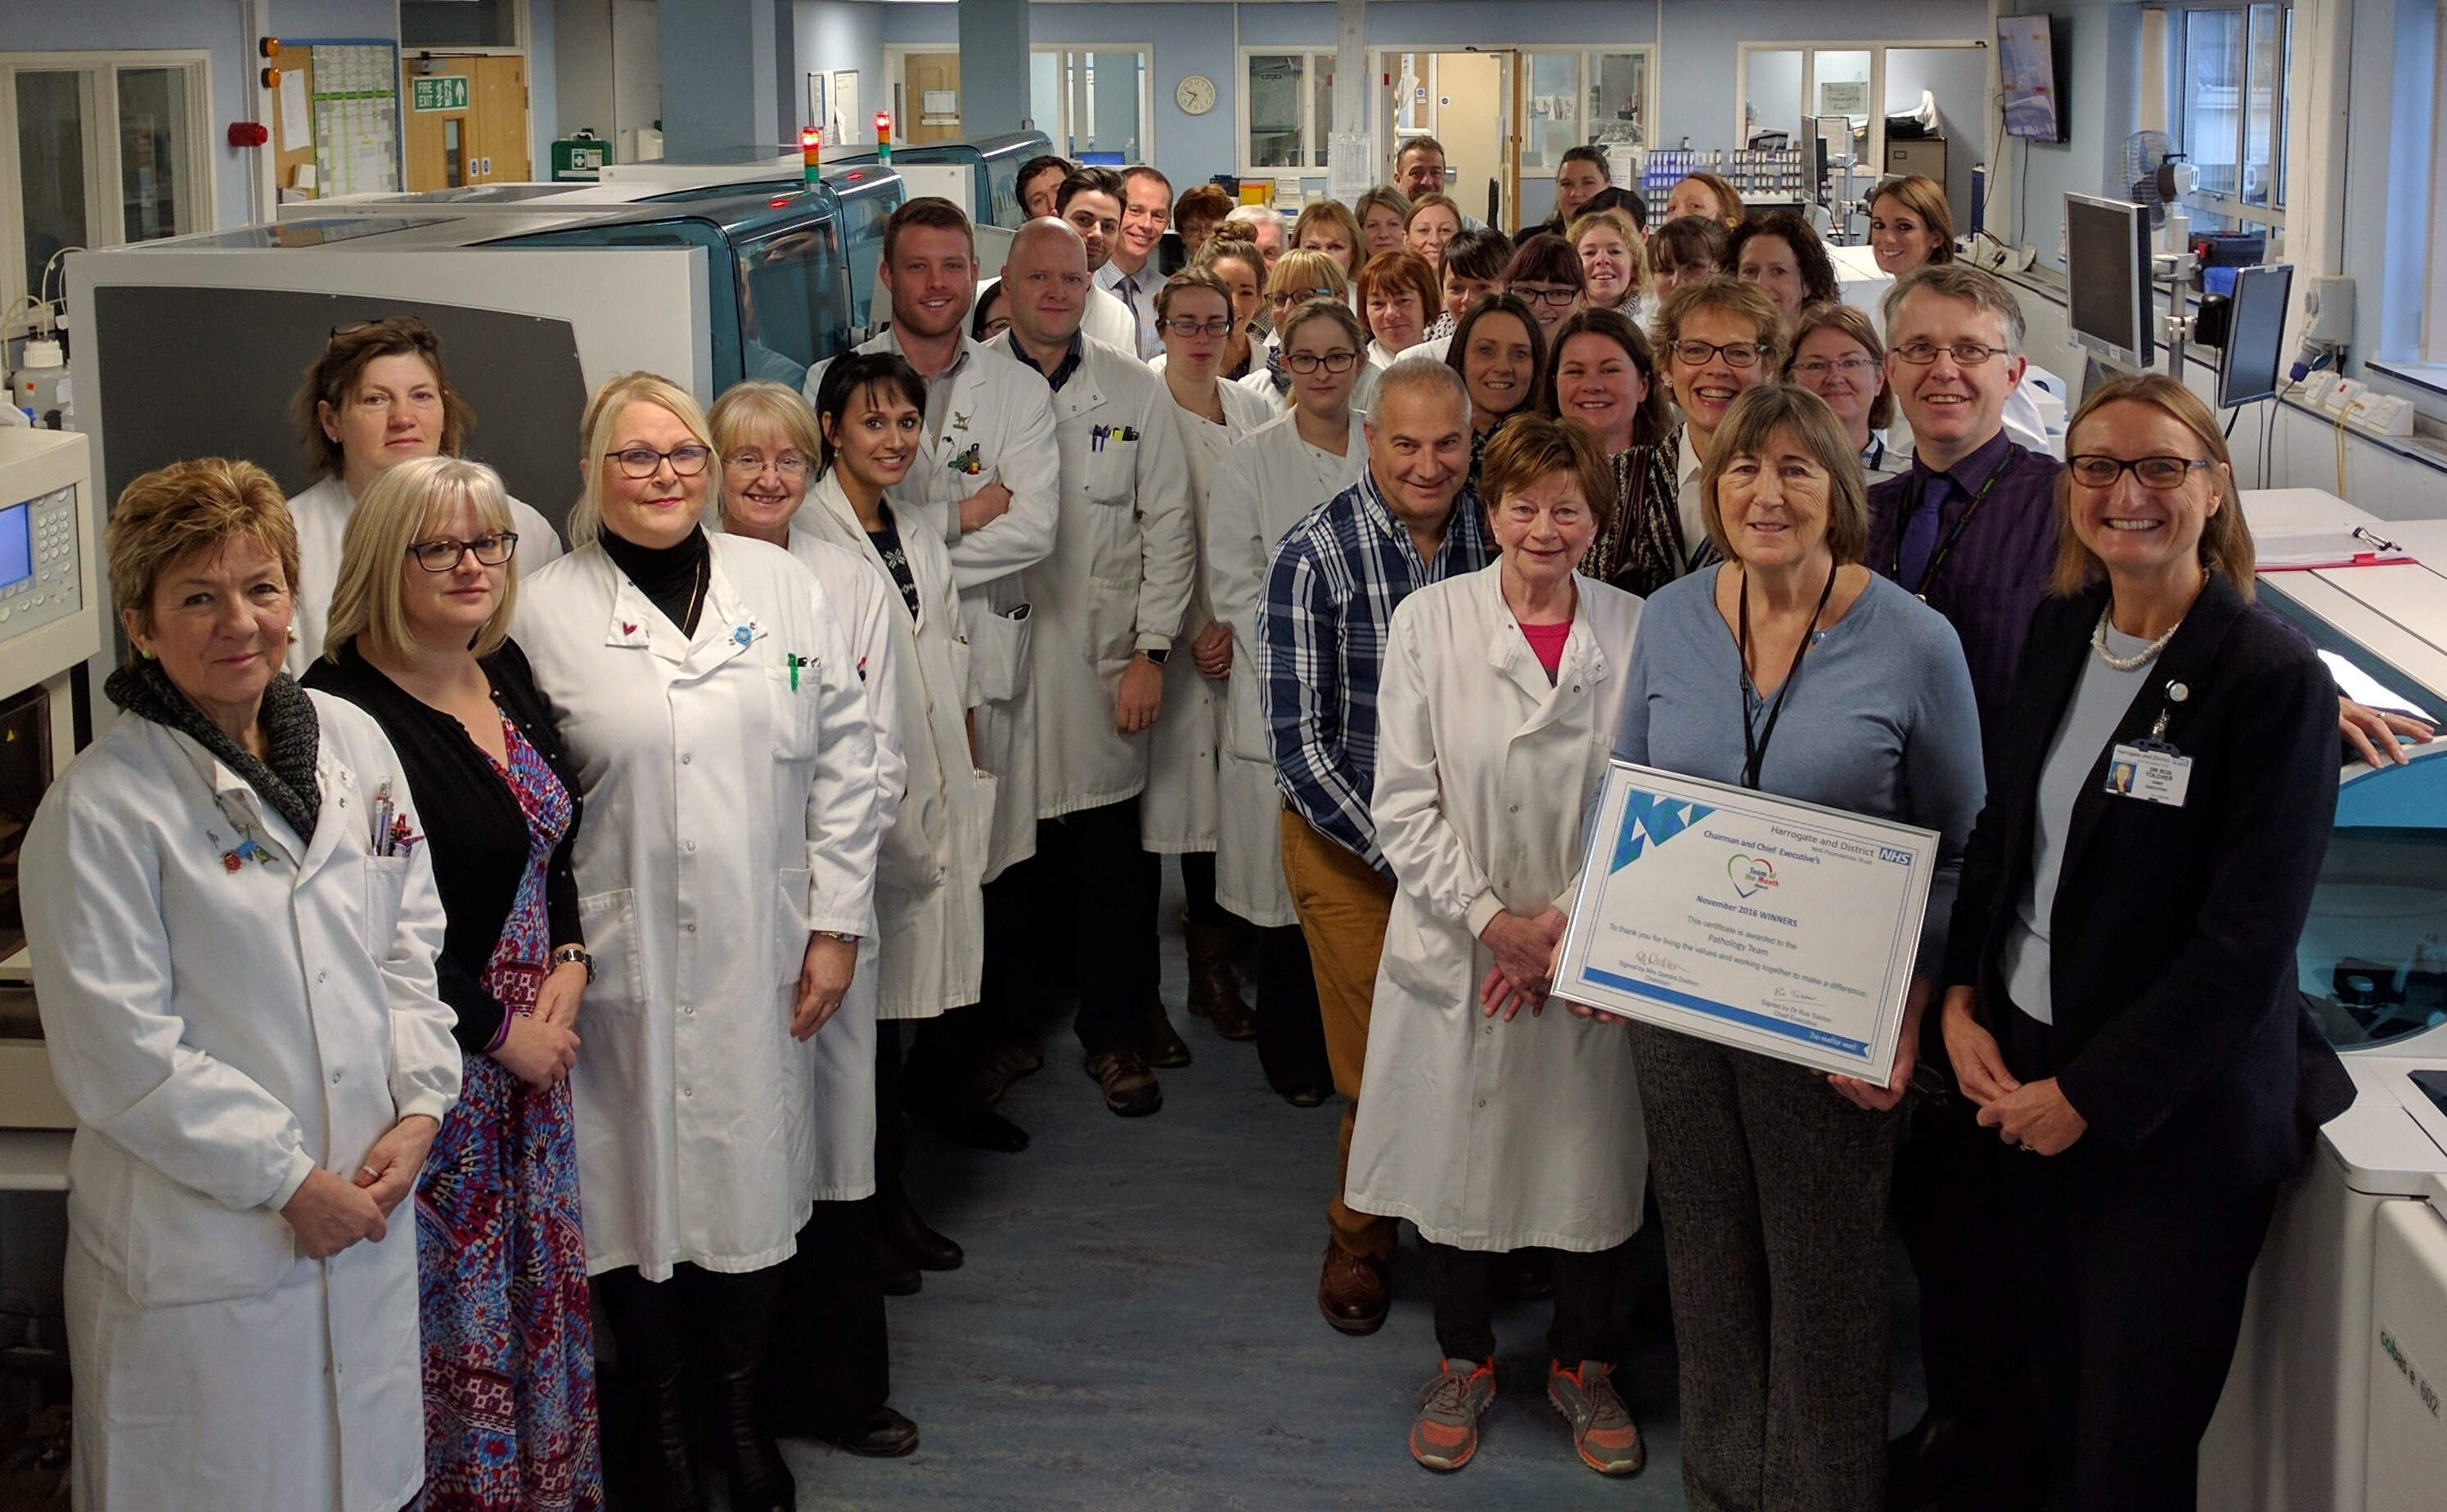 November Team of the Month winners, Pathology presented with their award.